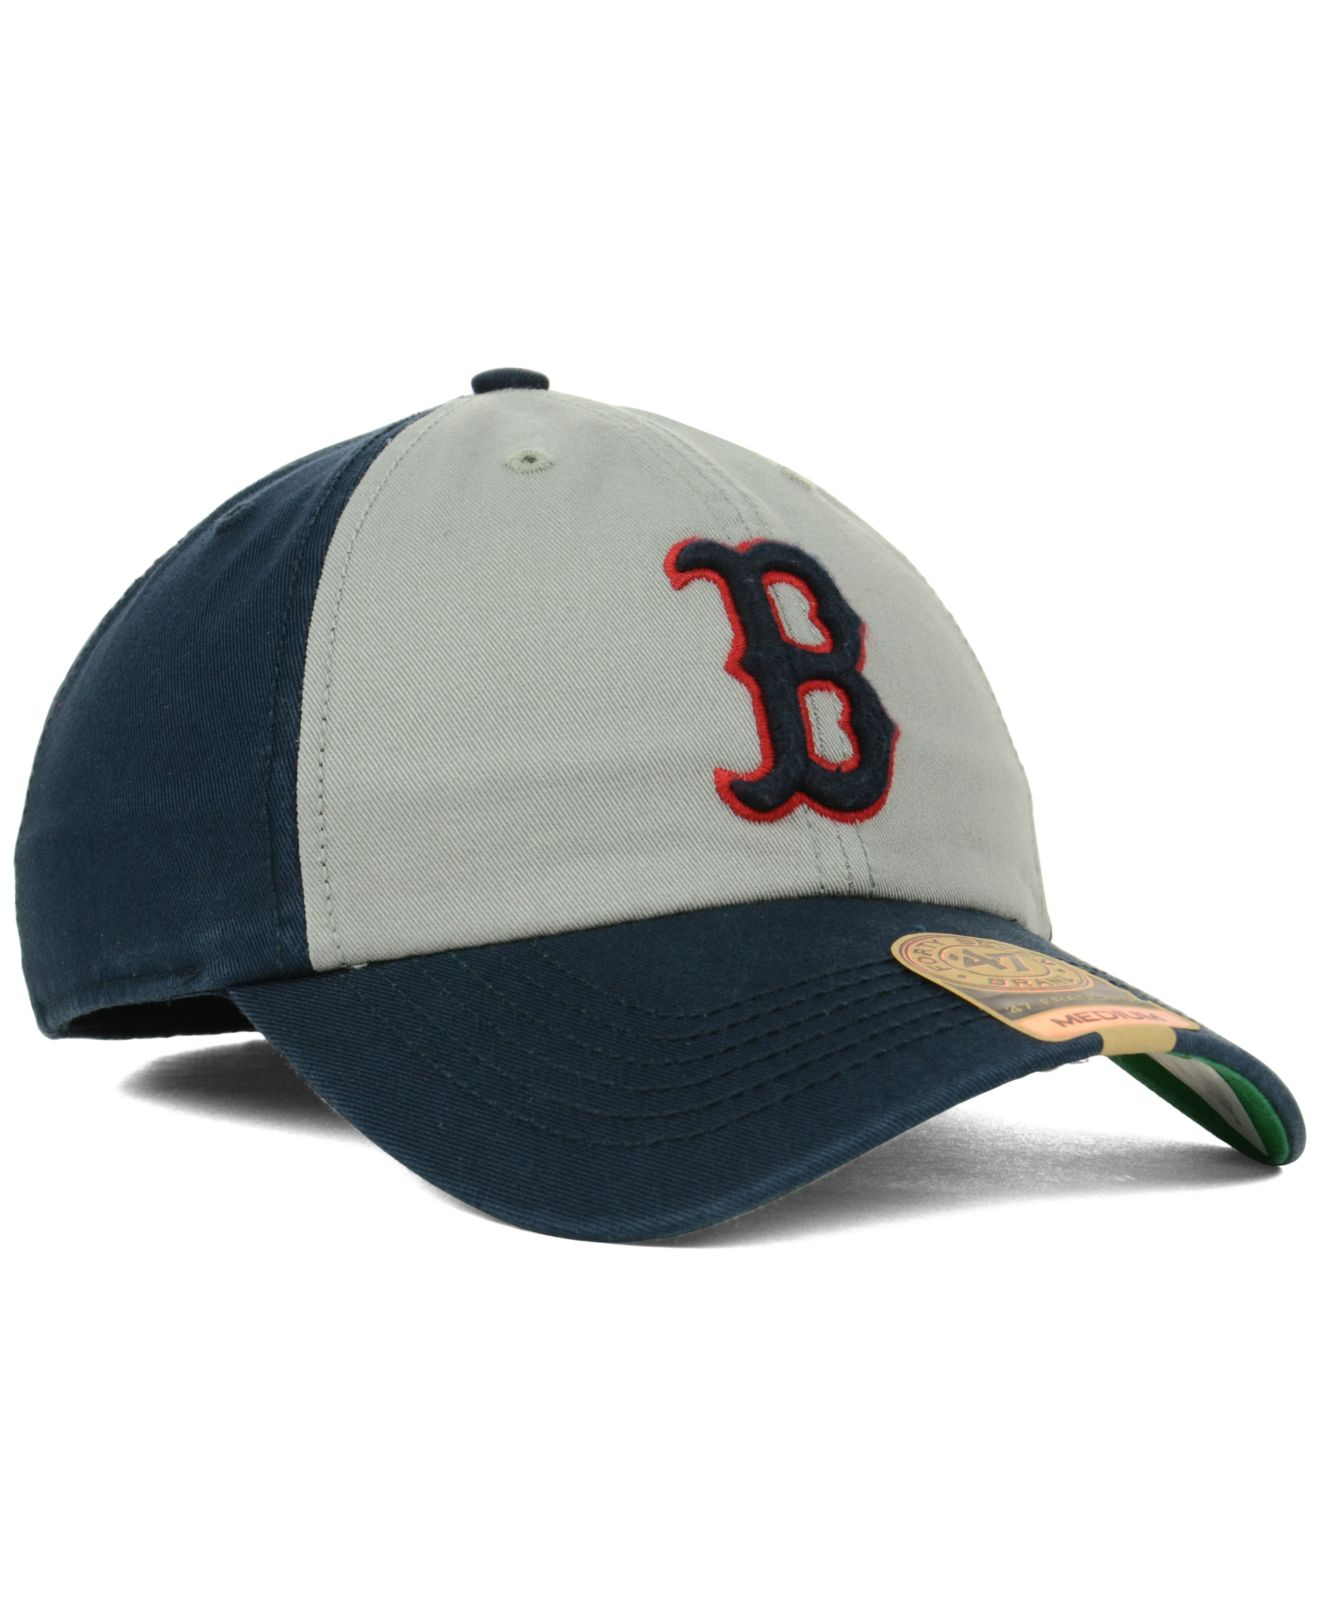 aa31bbdf87b Lyst - 47 Brand Boston Red Sox Vip Franchise Cap in Gray for Men